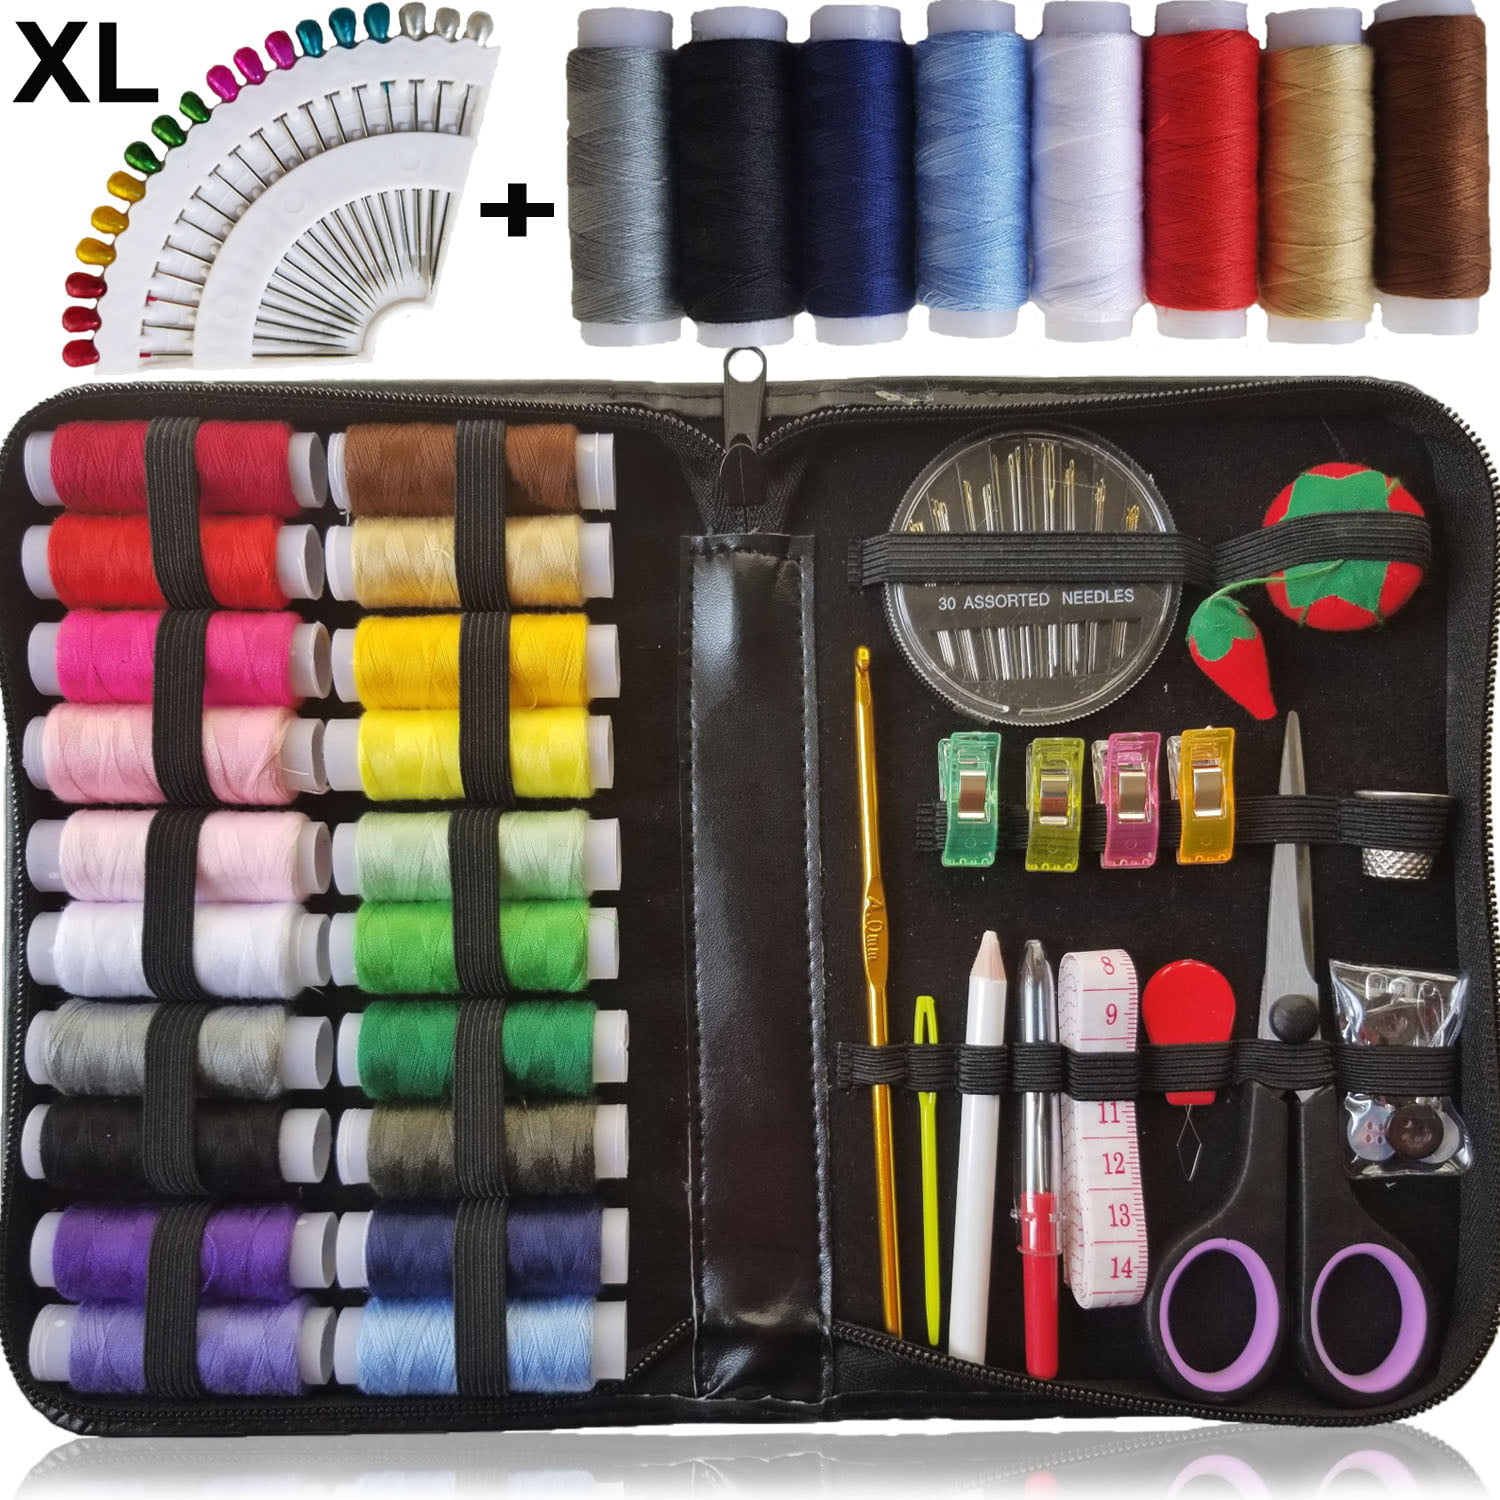 SEWING KIT, XL Quality Sewing Supplies, 28 XL Spools of ...